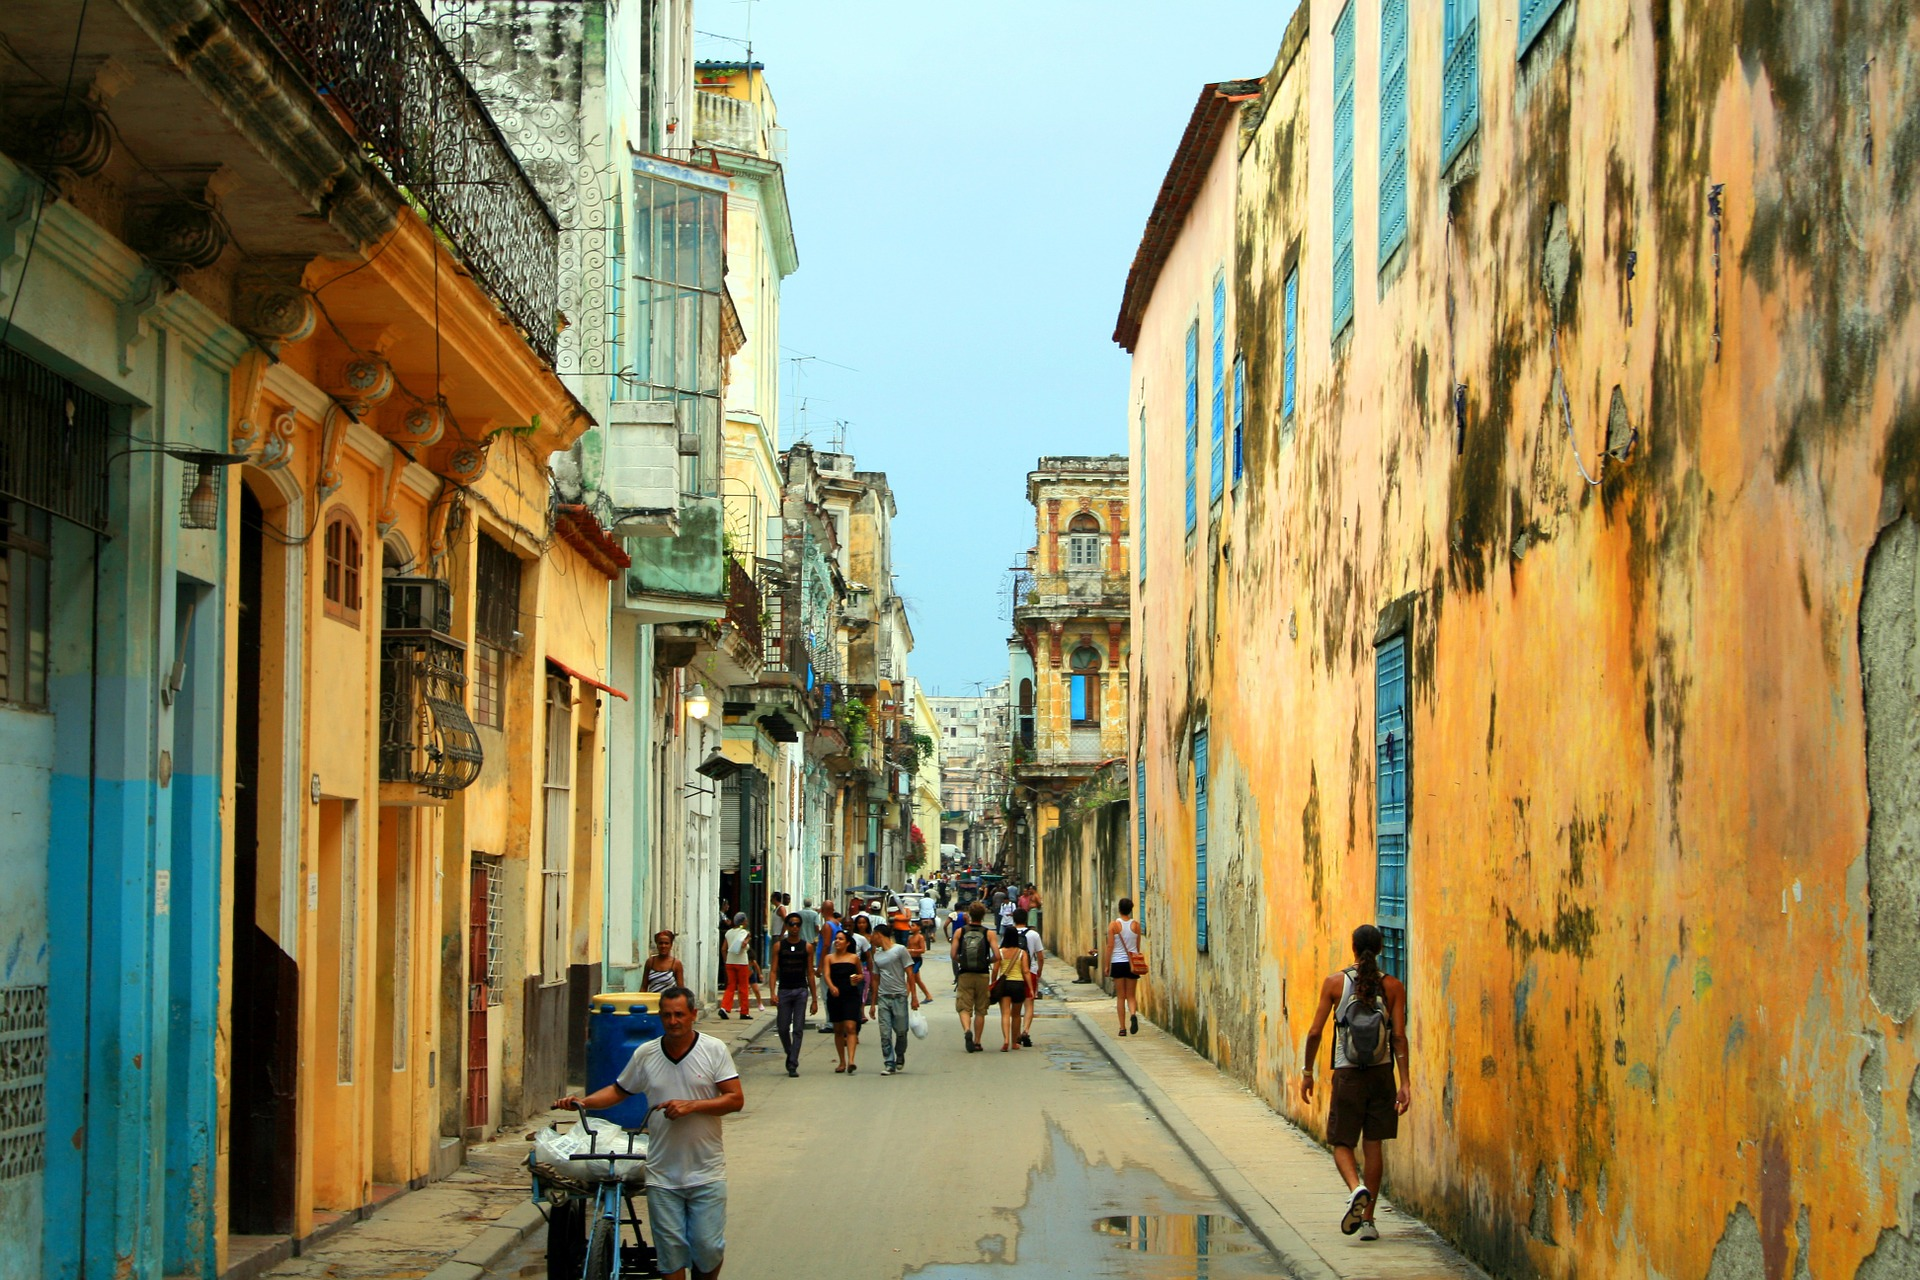 Havana has a strong urban and peri-urban farming infrastructure